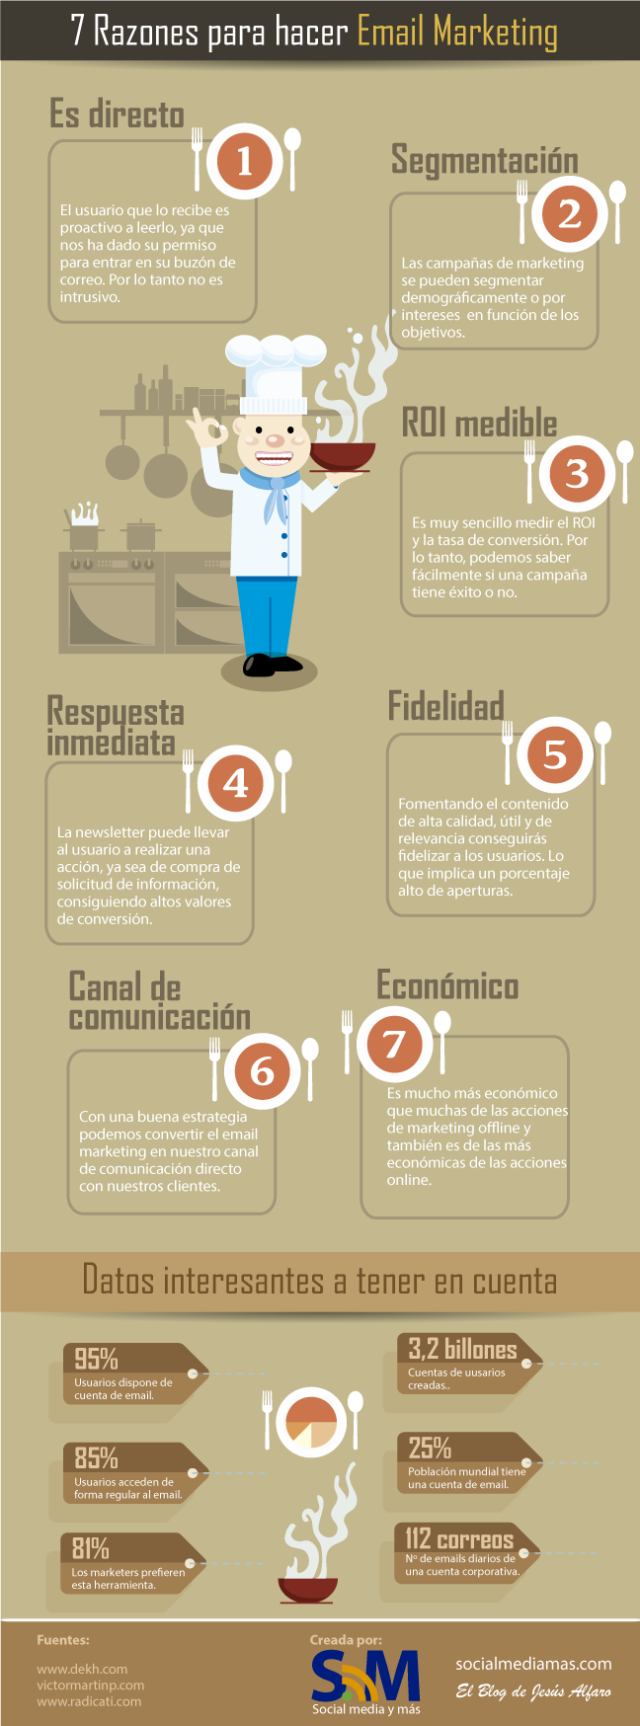 E-mail Marketing en la empresa